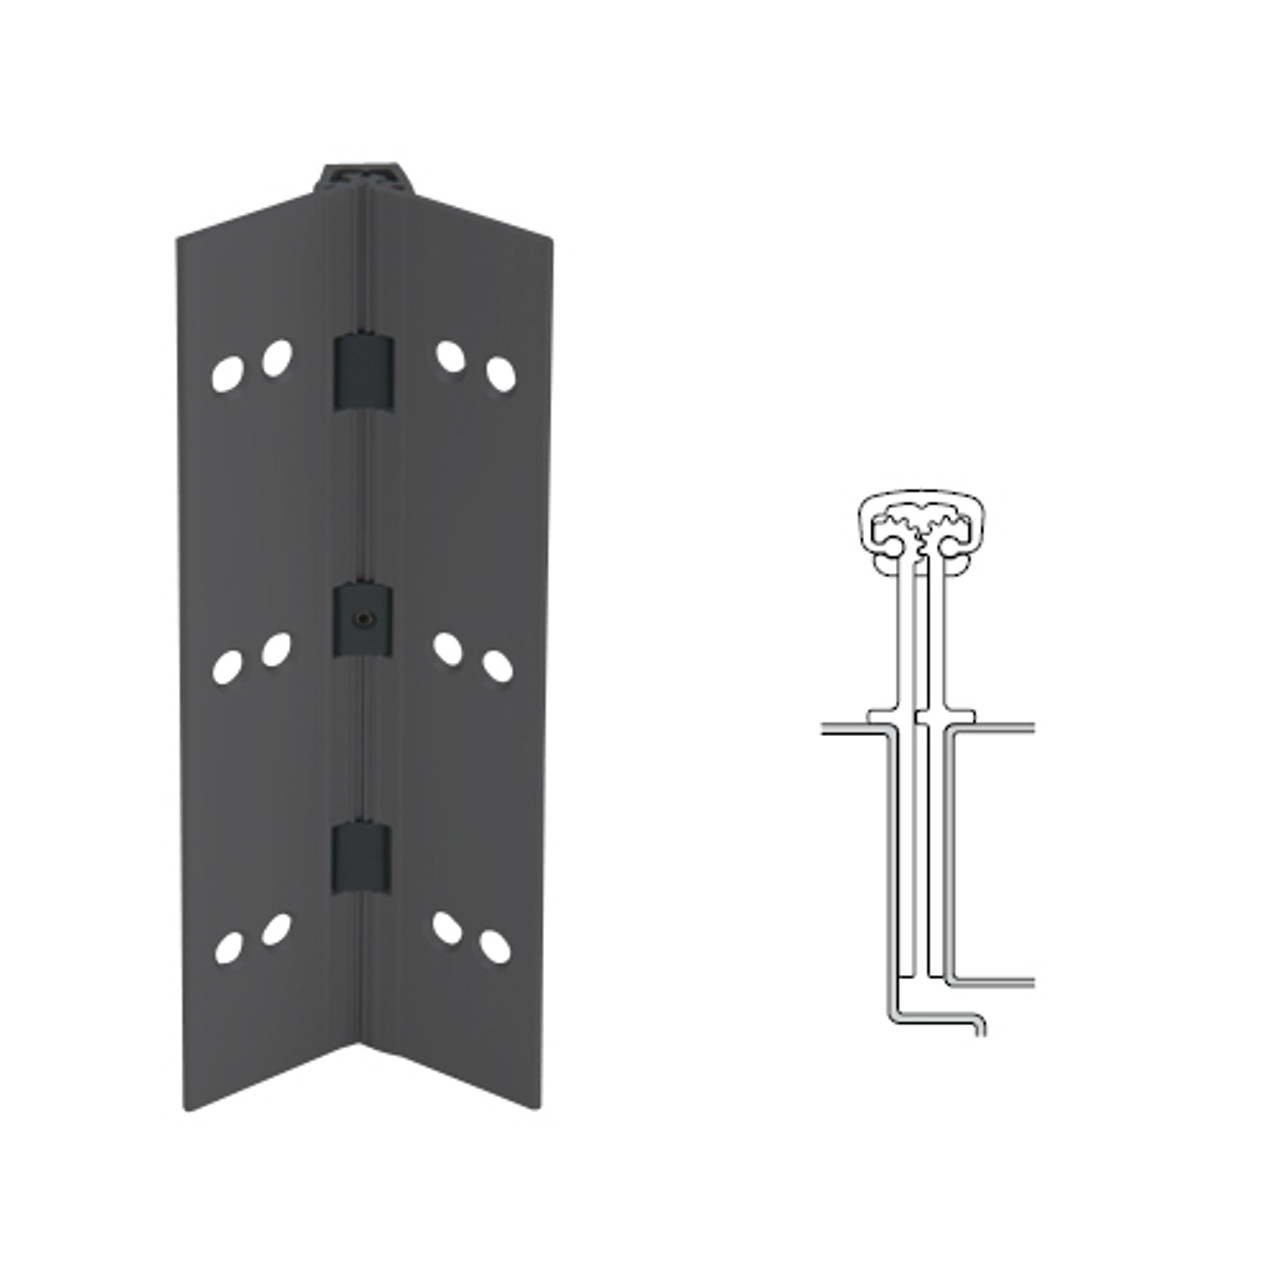 040XY-315AN-83-WD IVES Full Mortise Continuous Geared Hinges with Wood Screws in Anodized Black